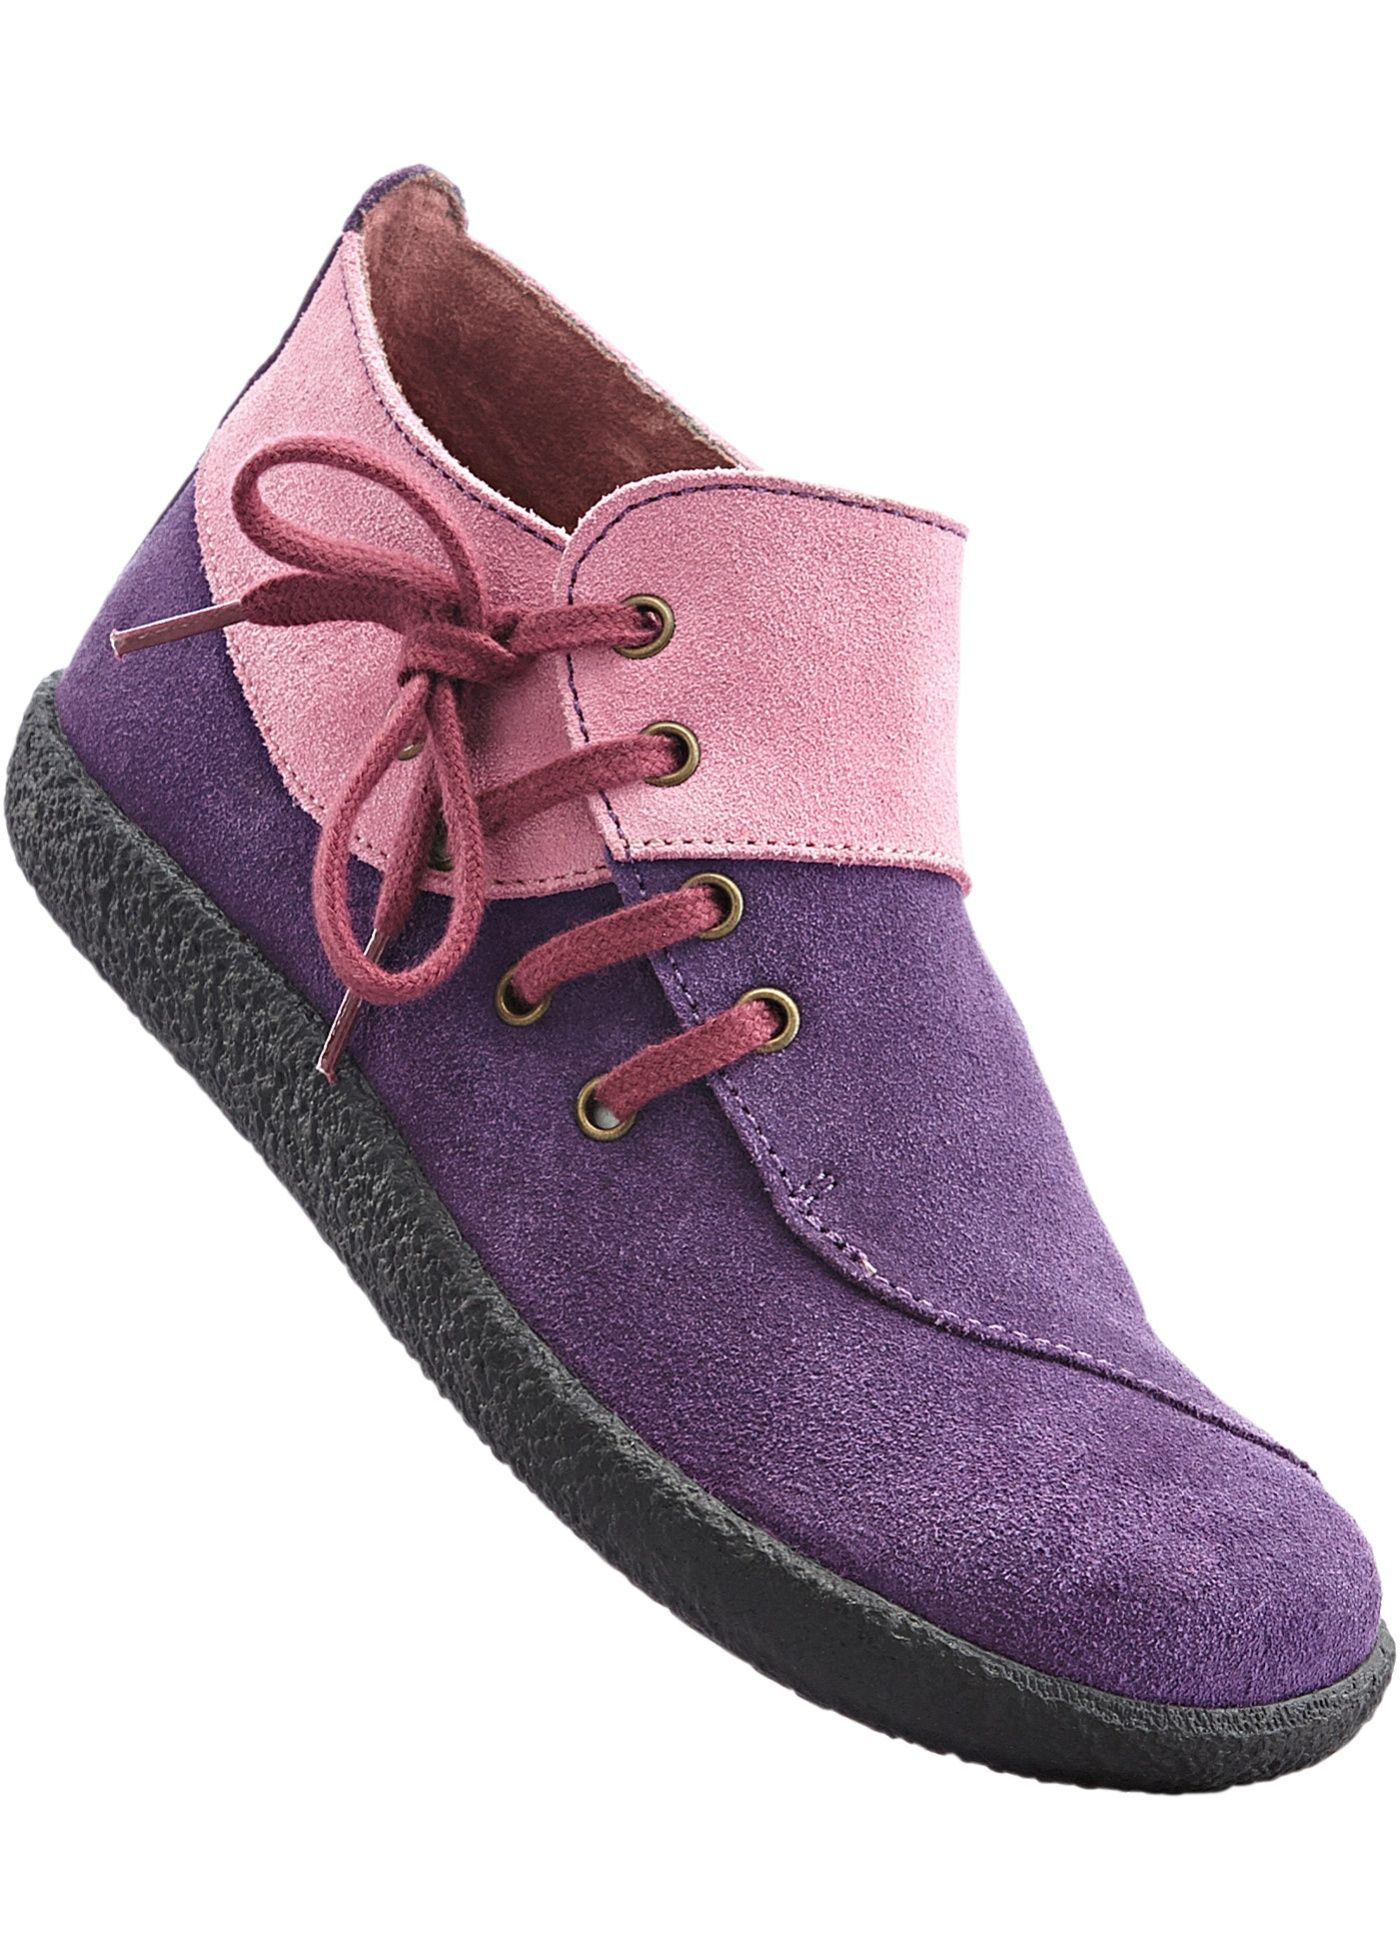 9aec788f99bb Bequemer Schnürer aus Leder | shoes | Pinterest | Shoes